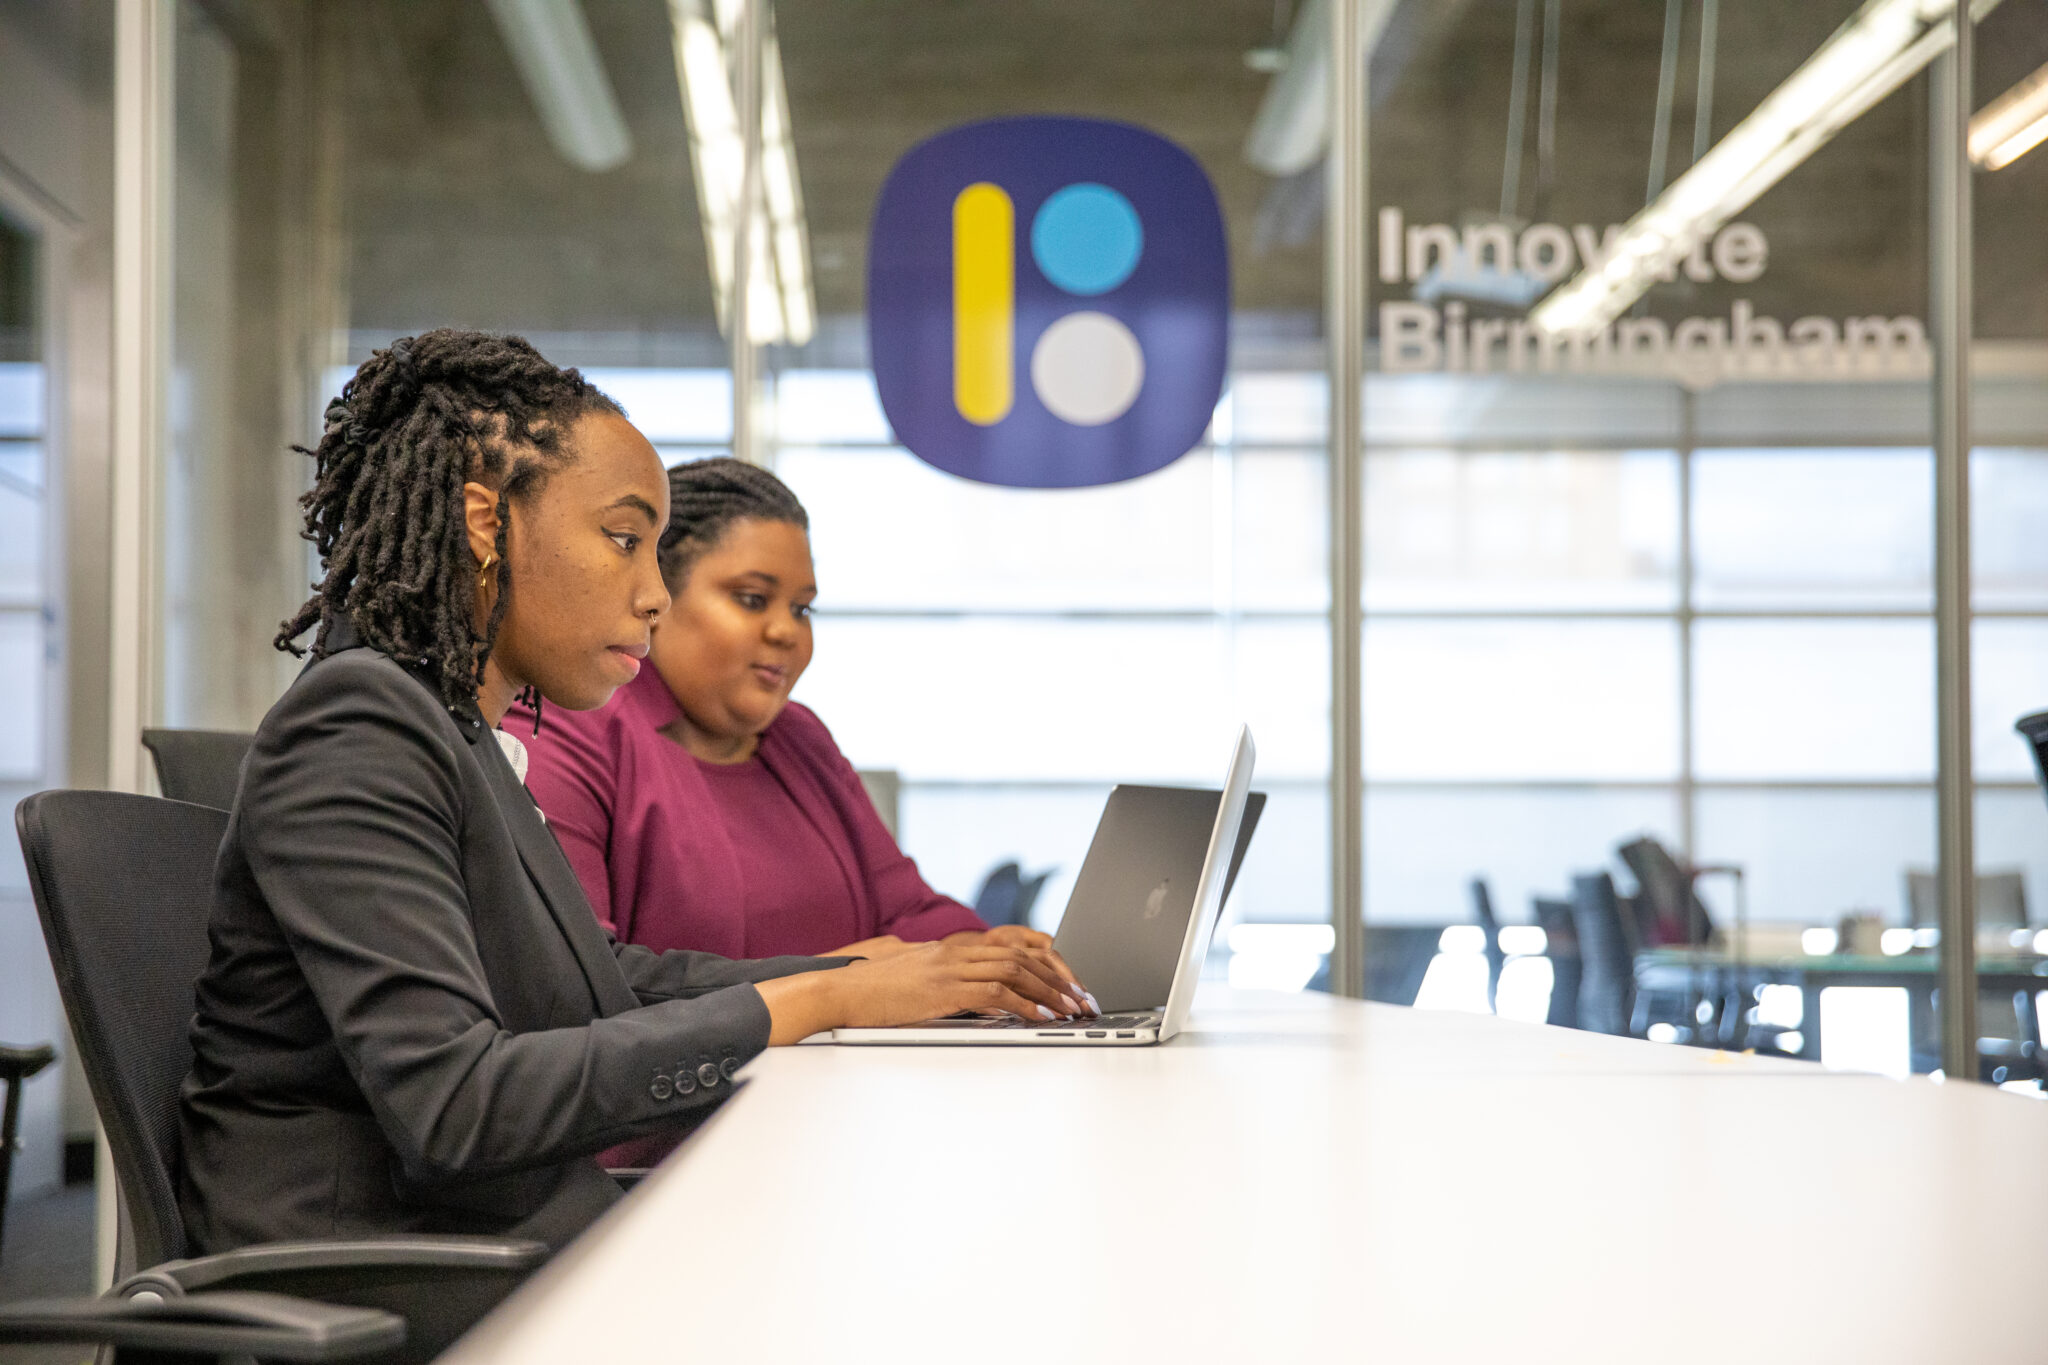 Innovate Birmingham celebrates 5 years in The Magic City—here's what next